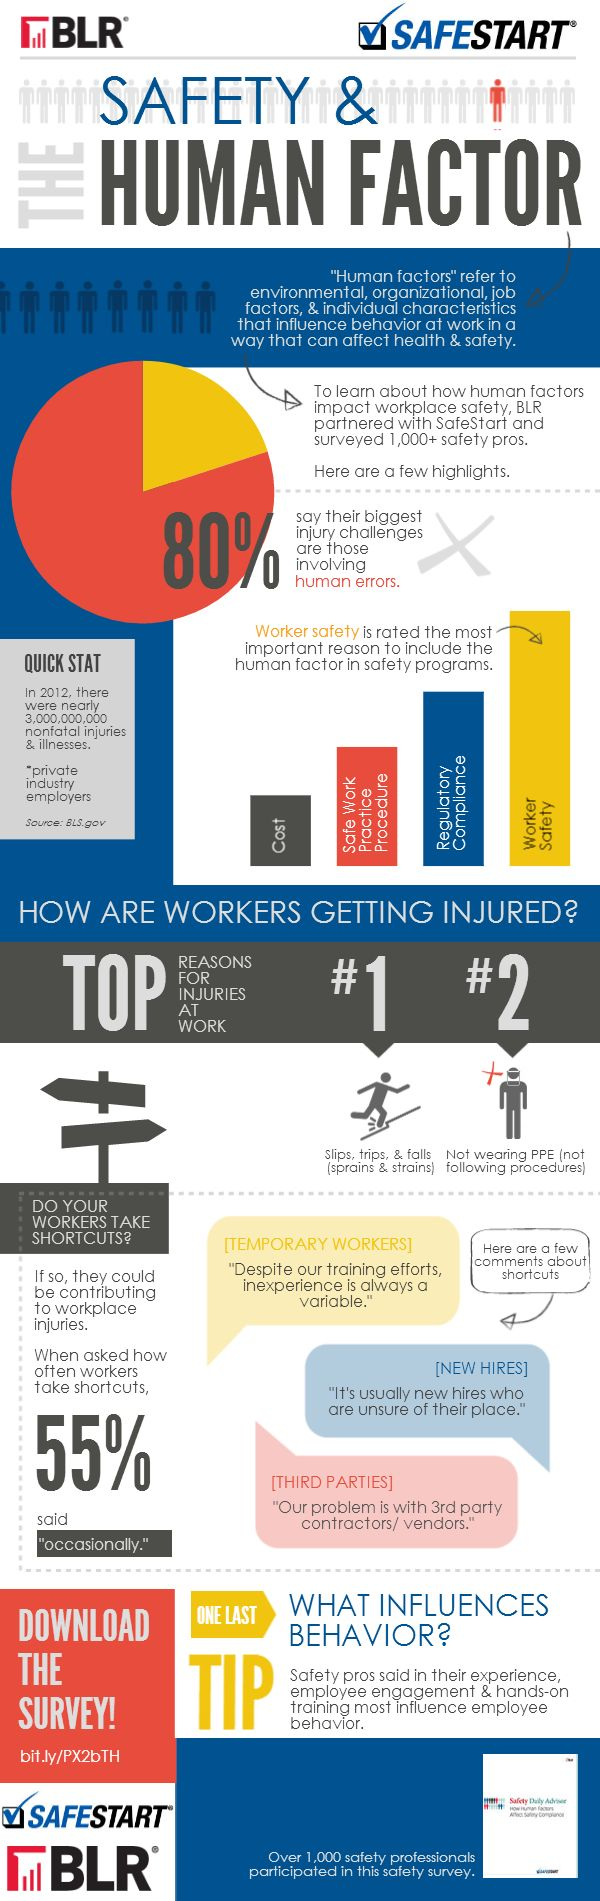 17 Best images about patient safety on Pinterest | Health ...